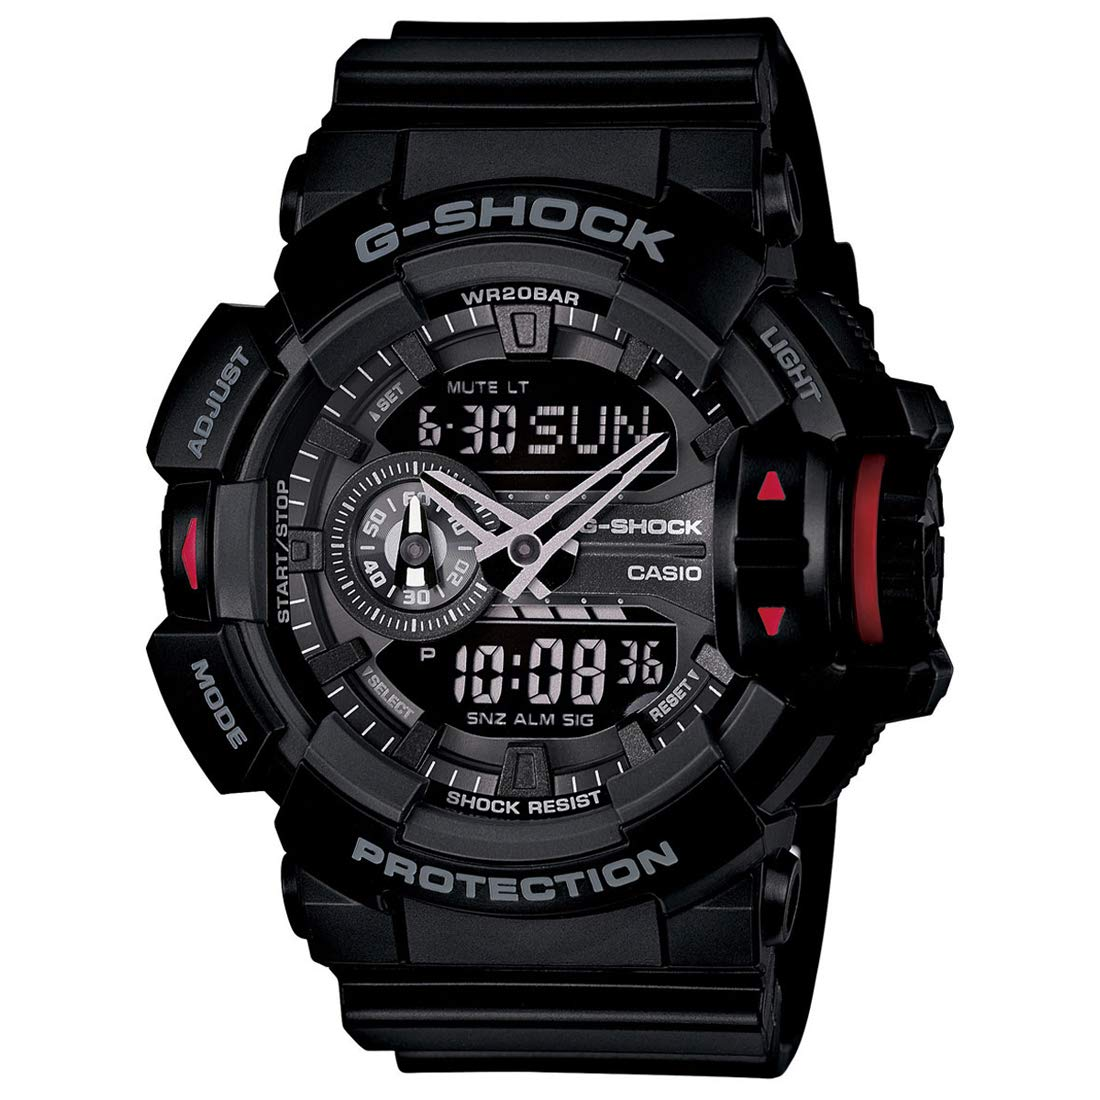 ea29bcfcce68 Buy Casio G-Shock Analog-Digital Black Dial Men s Watch - GA-400-1BDR  (G566) Online at Low Prices in India - Amazon.in